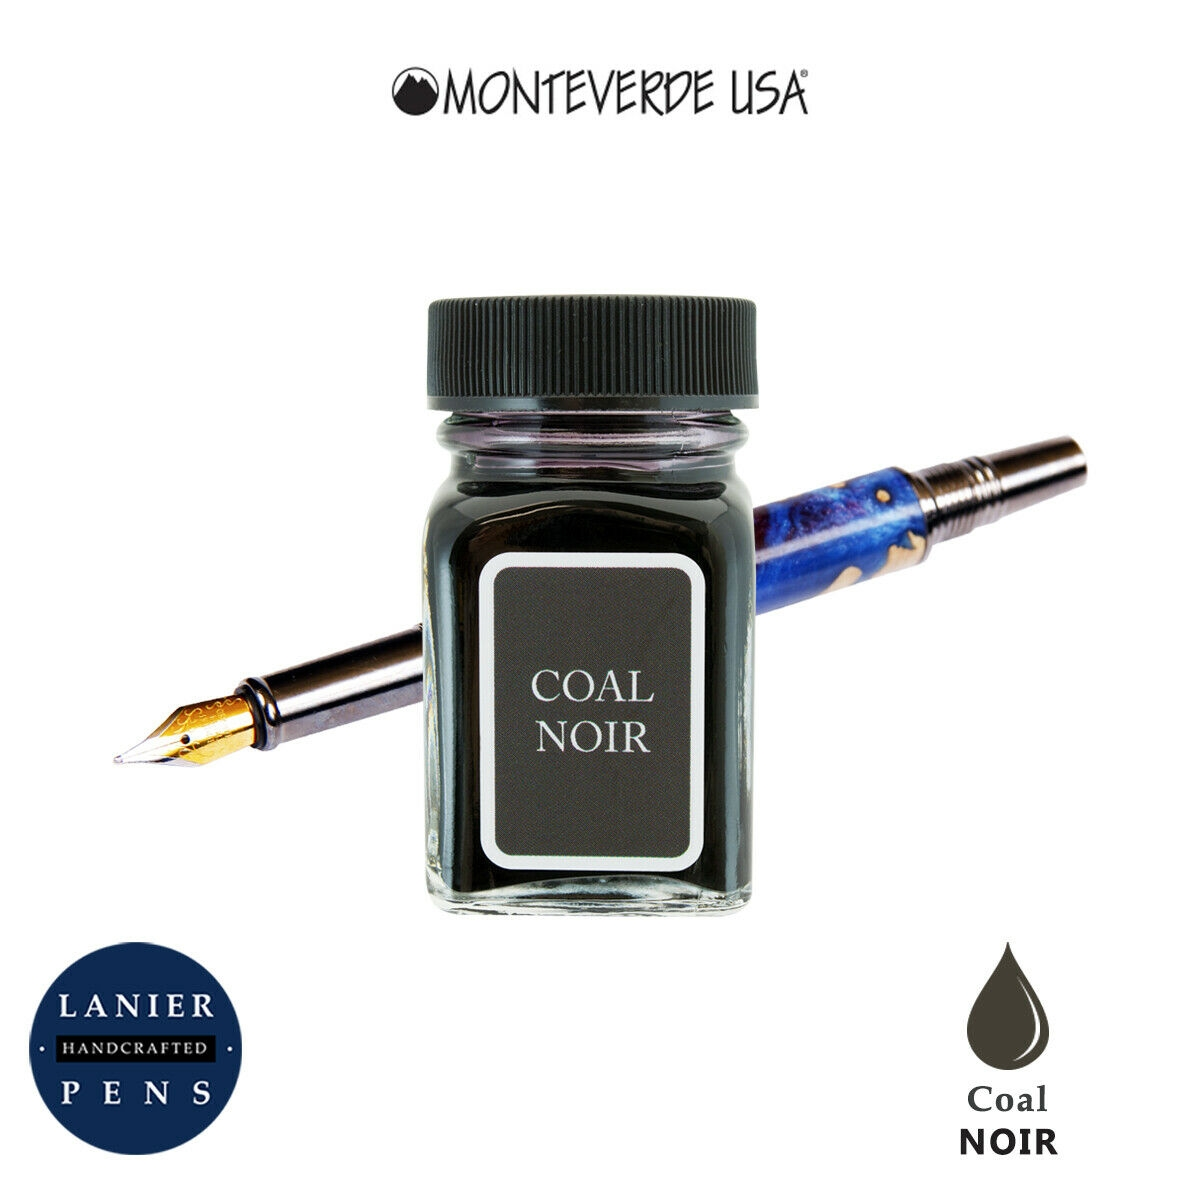 Monteverde G309LN 30 ml Noir Fountain Pen Ink Bottle- Coal Noir